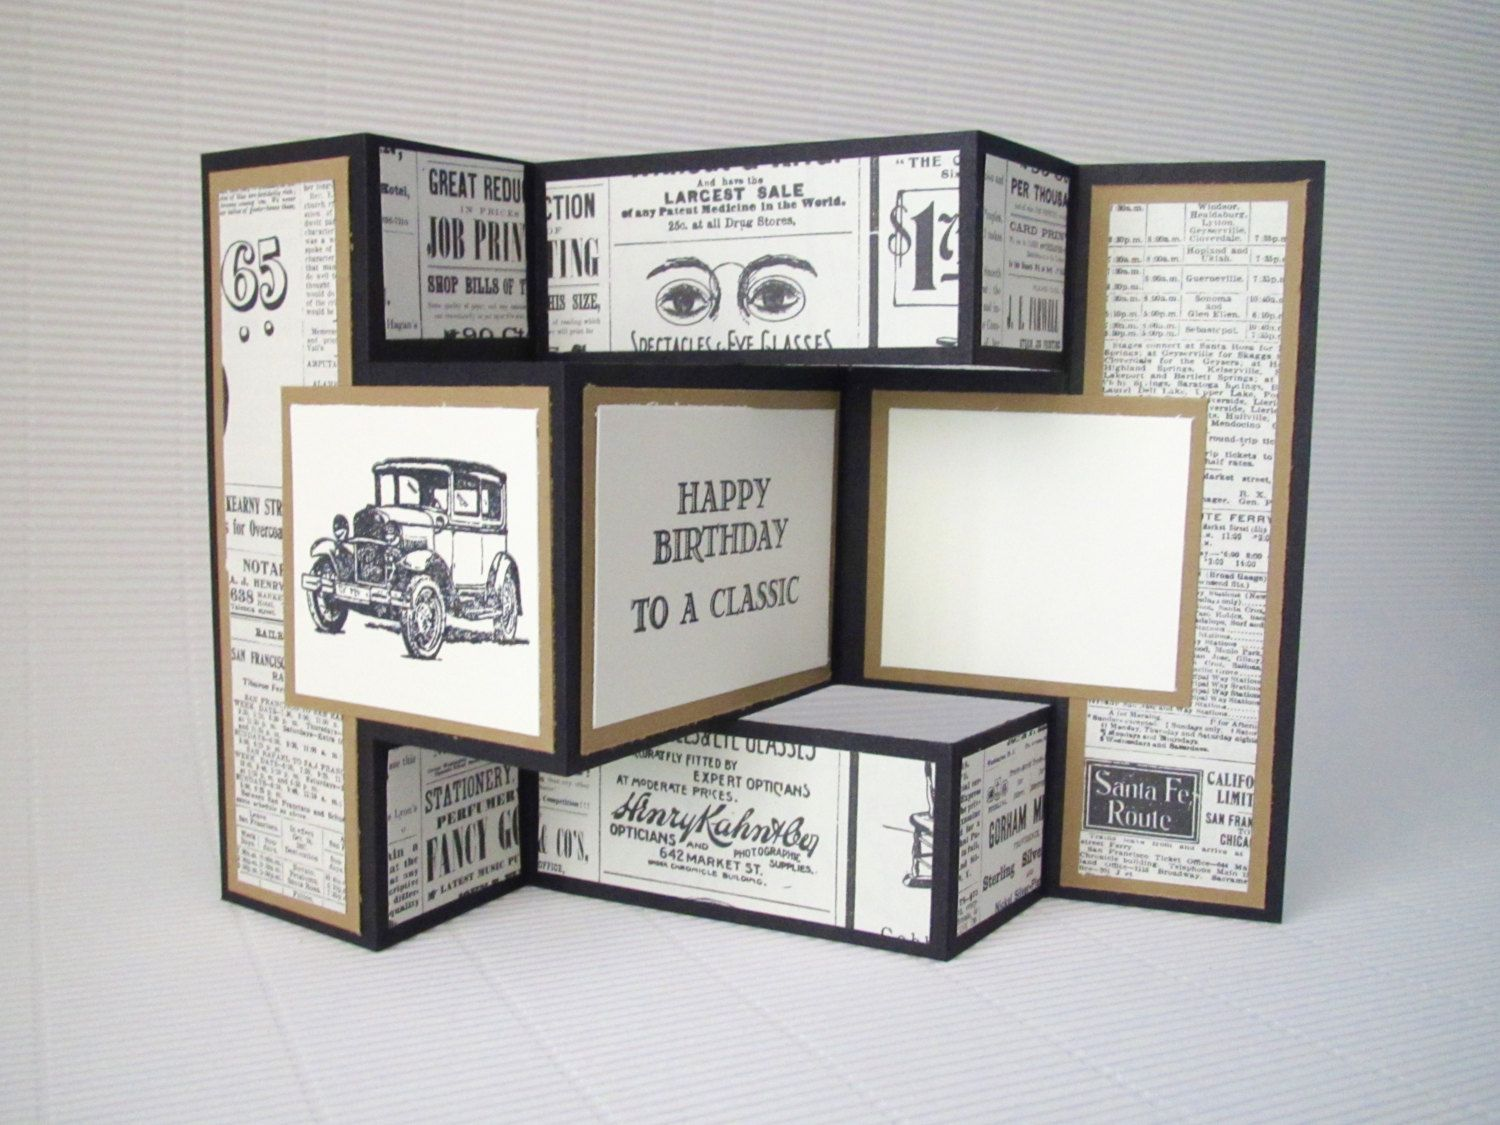 Happy birthday card handmade stamped blank fancy fold vintage happy birthday card handmade stamped blank fancy fold vintage elegant masculine black brown classic car stationery greeting card home living m4hsunfo